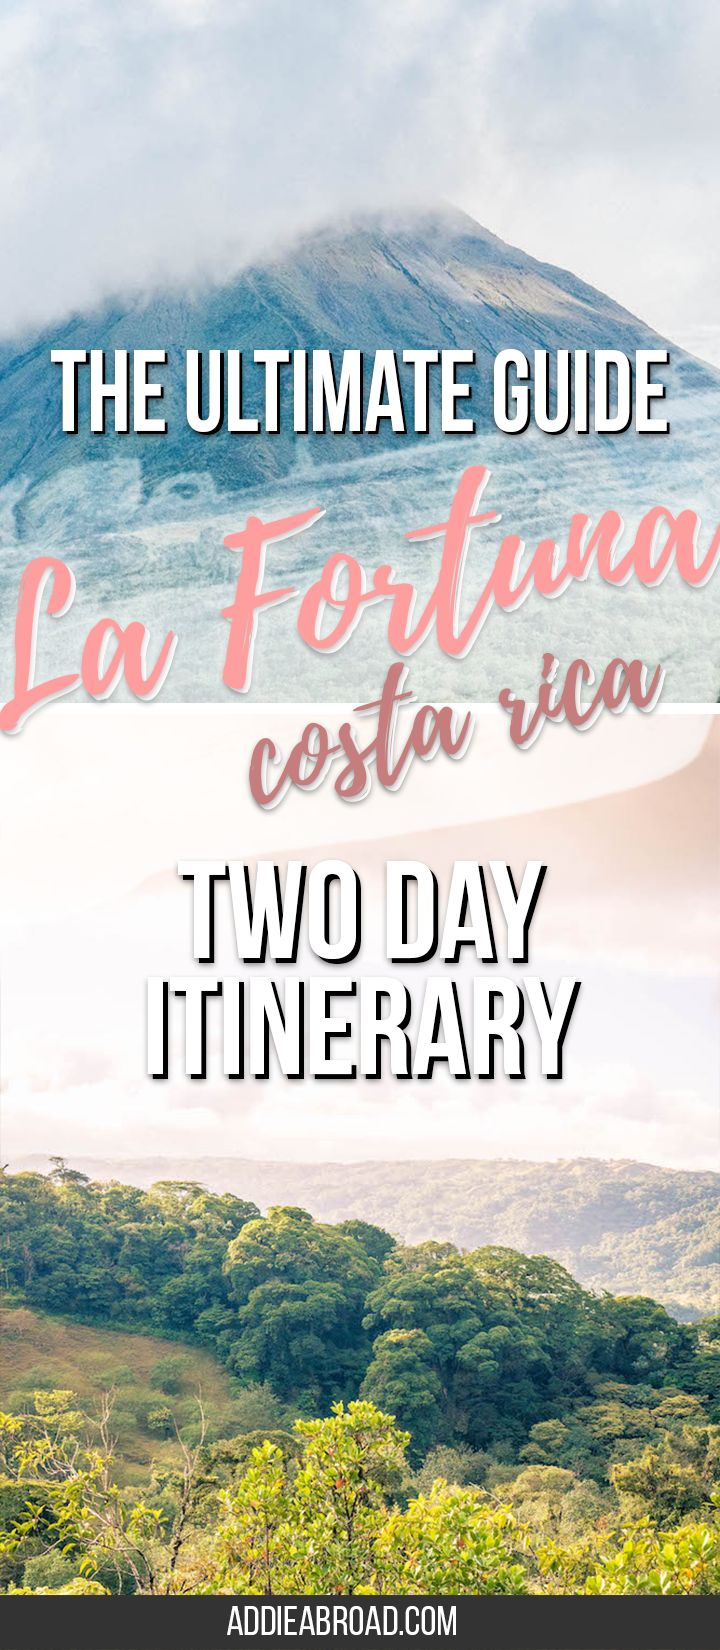 This is THE ultimate guide to La Fortuna, Costa Rica, including a two day itinerary for La Fortuna, things to do in La Fortuna Costa Rica, where to stay in La Fortuna, and what to pack. Look no further for what to do in La Fortuna, Costa Rica! via @addieabroad